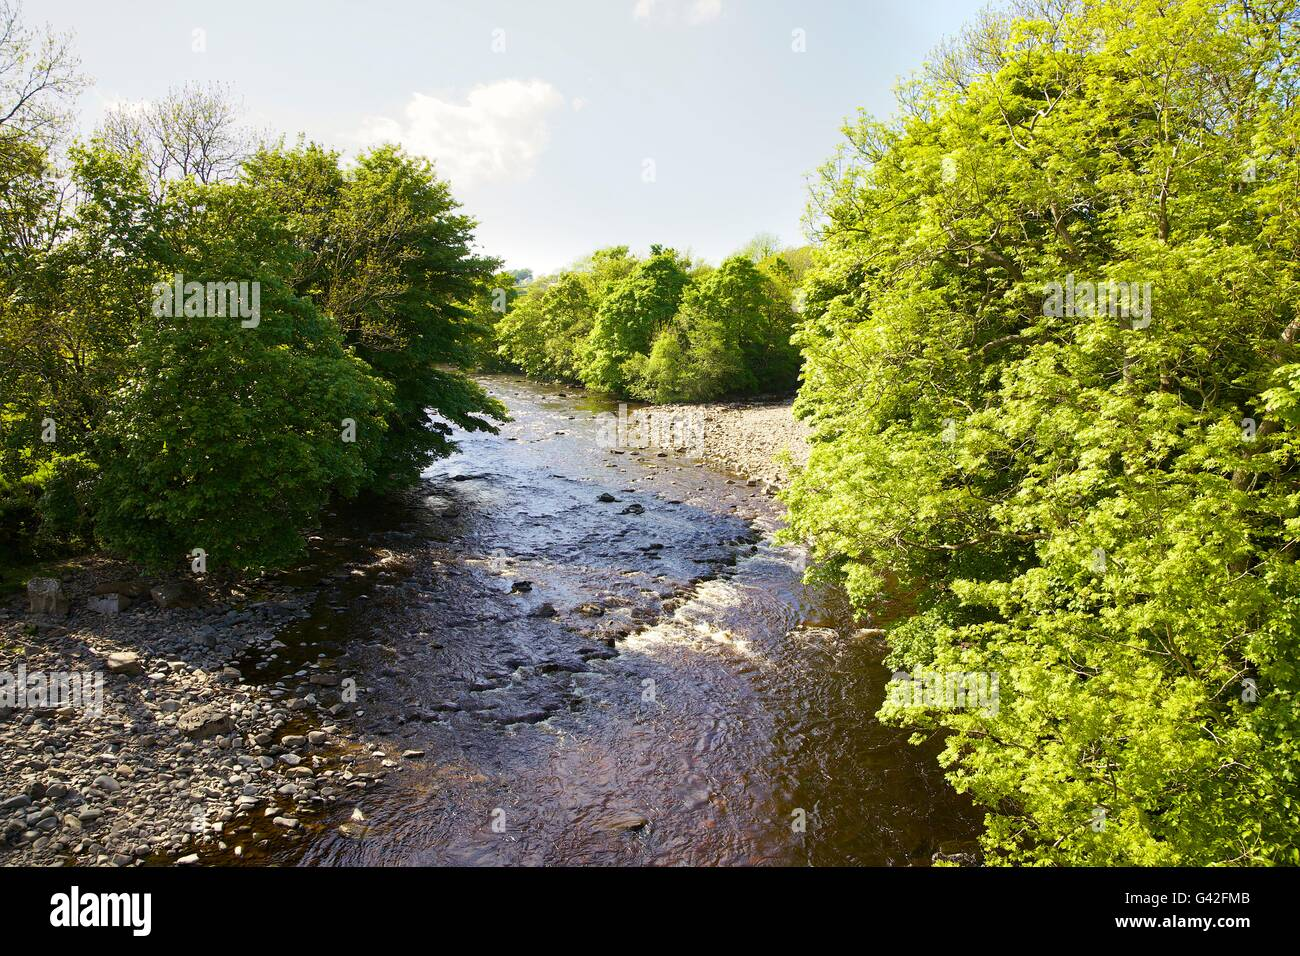 River Tees. Middleton-in-Teesdale, County Durham, England, United Kingdom, Europe. - Stock Image